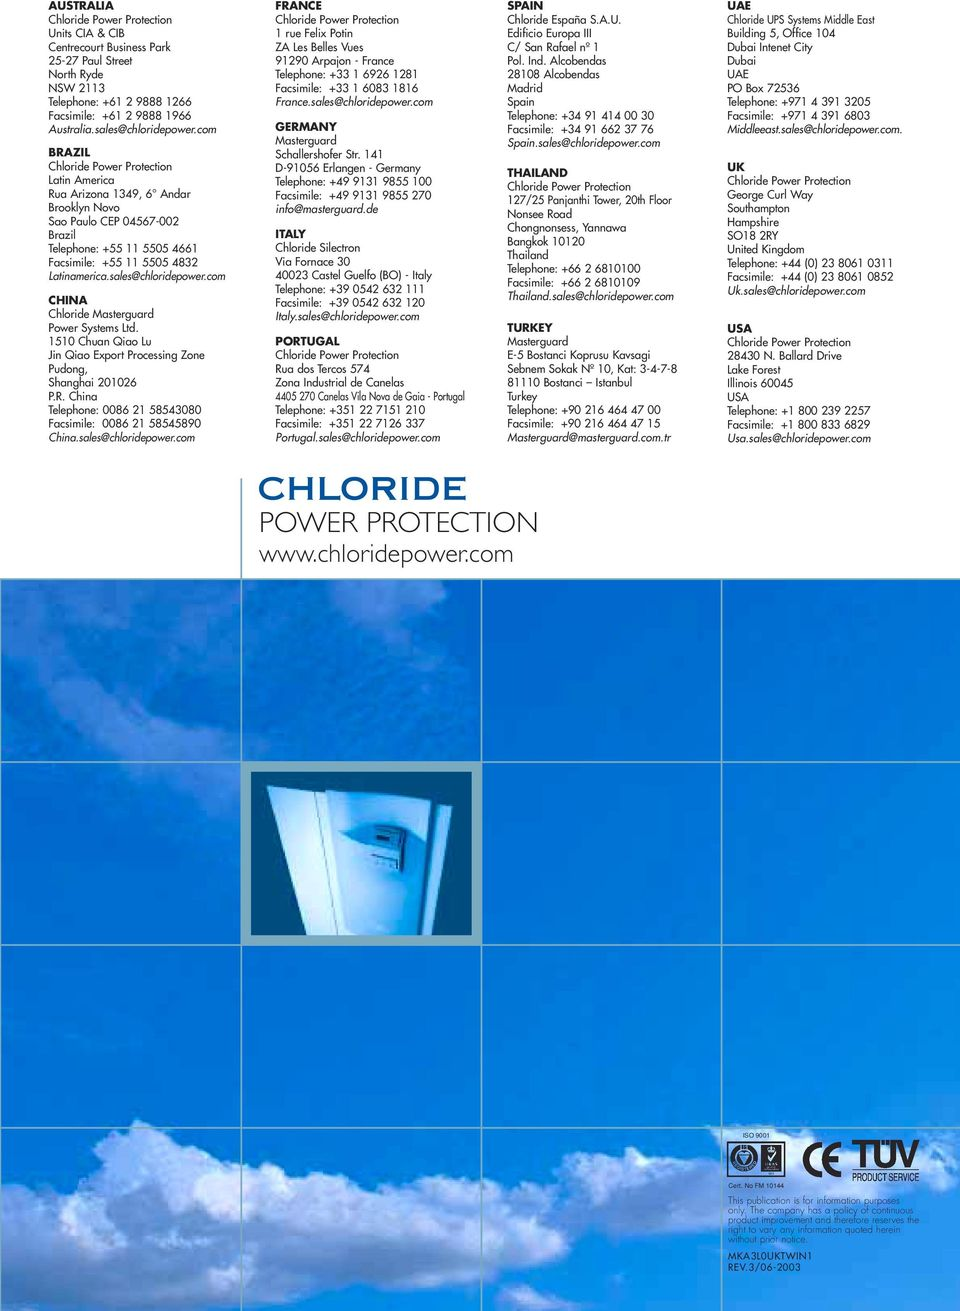 synthesis twin from 6 to 30 kva power protection pdf rh docplayer net Chloride Industrial Power Chloride Group